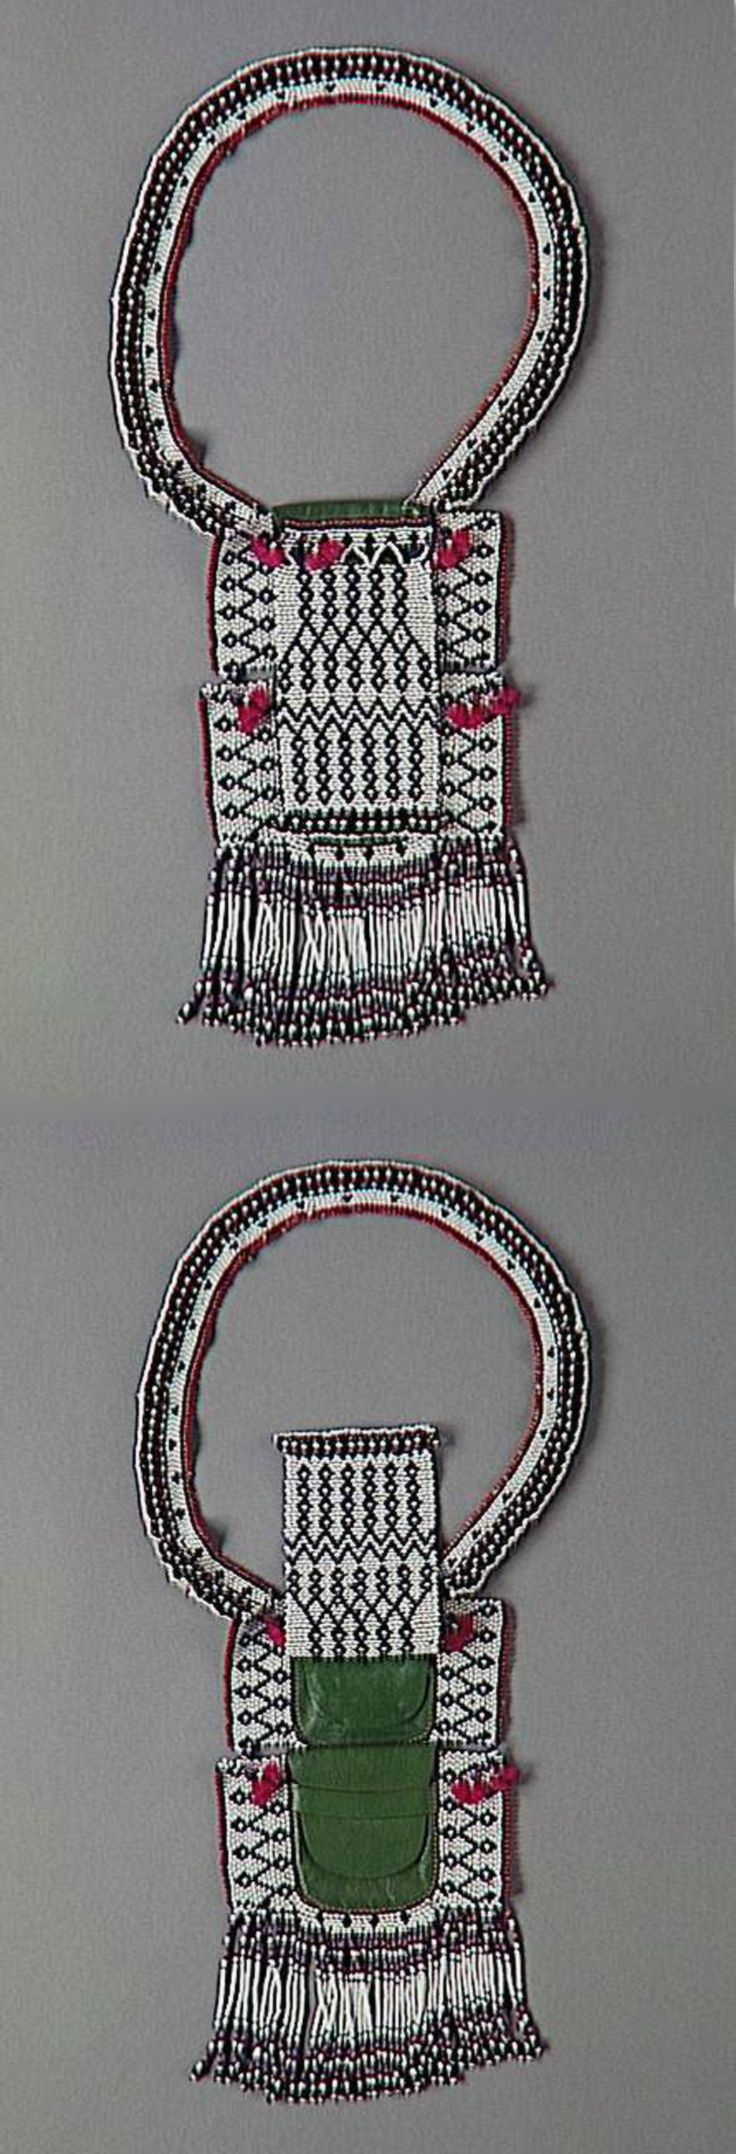 South Africa | Necklace with pouch from the Nguni (Thembu, Xhosa) people.  Element of the costume worn by young uninitiated men | Leather, textile, glass beads and wool